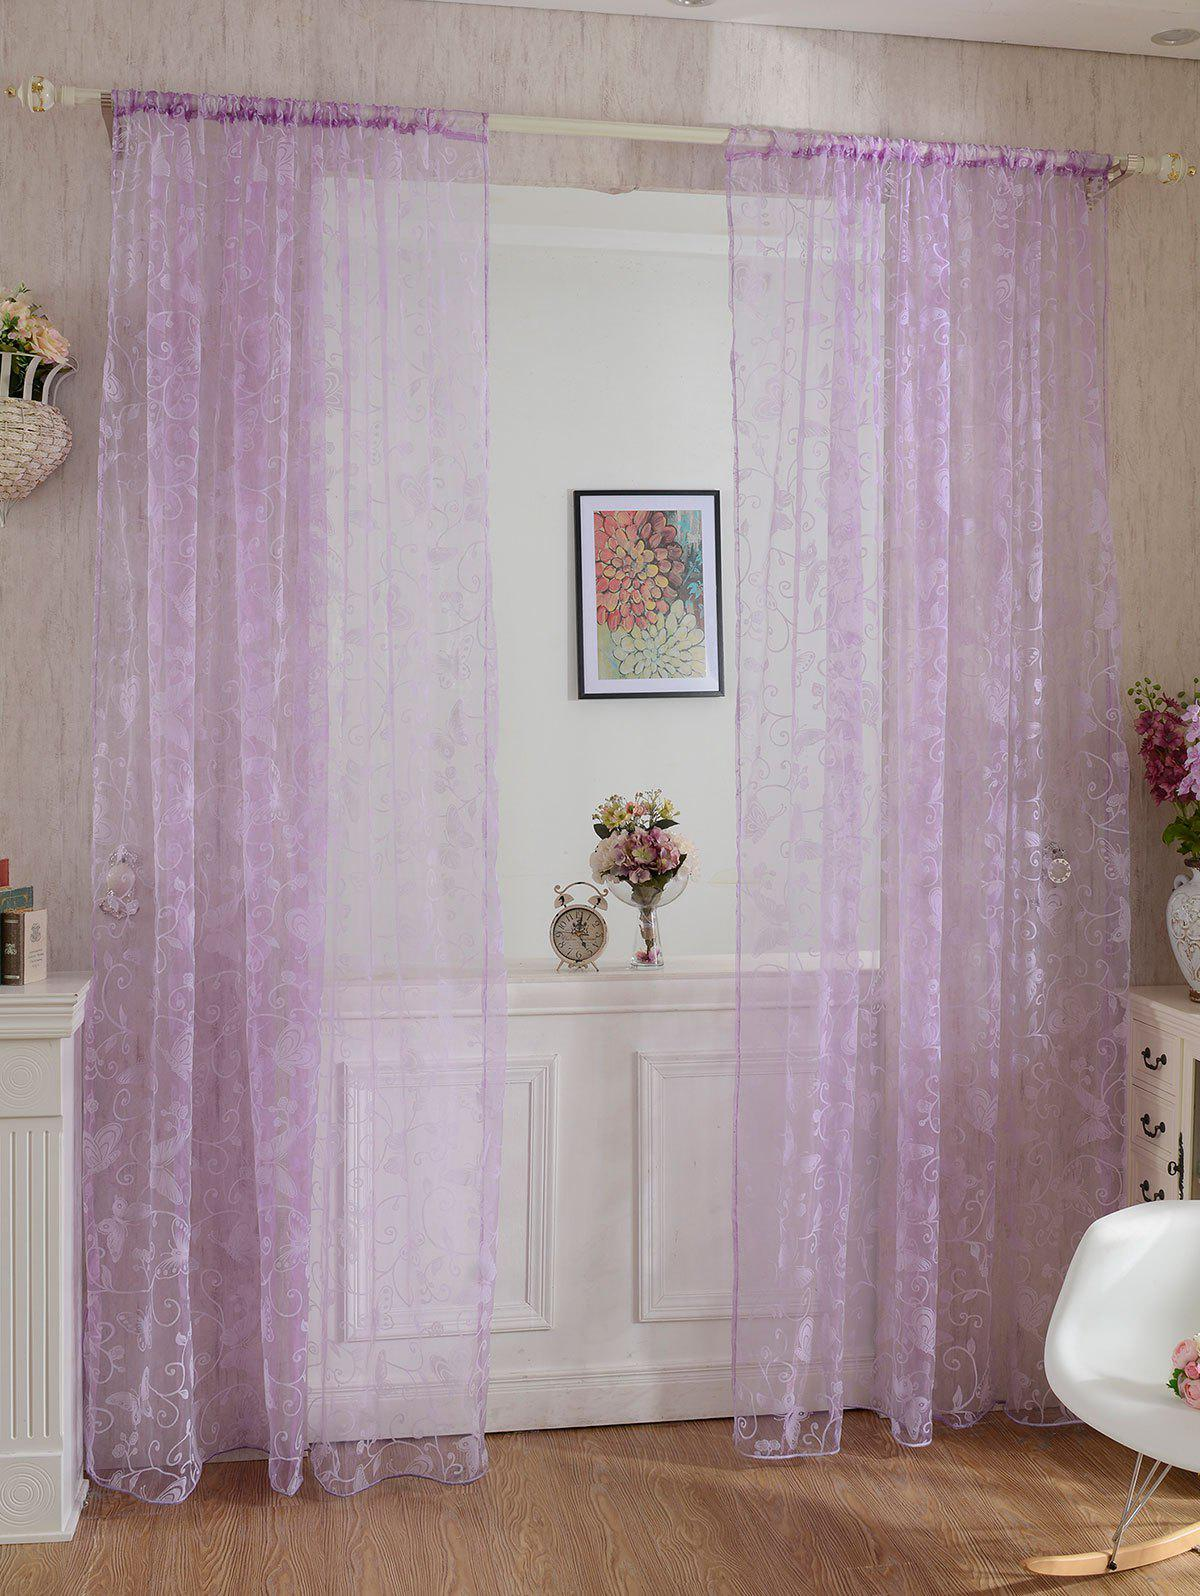 Chic 2 Panels Butterflies Embroidery Window Sheer Tulle Curtain